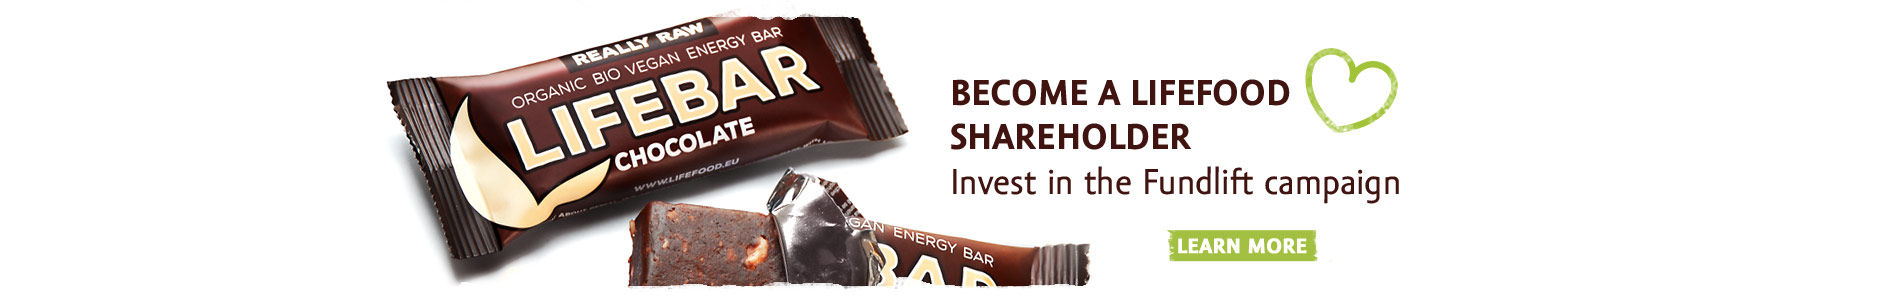 Become-a-lifefood-shareholder!